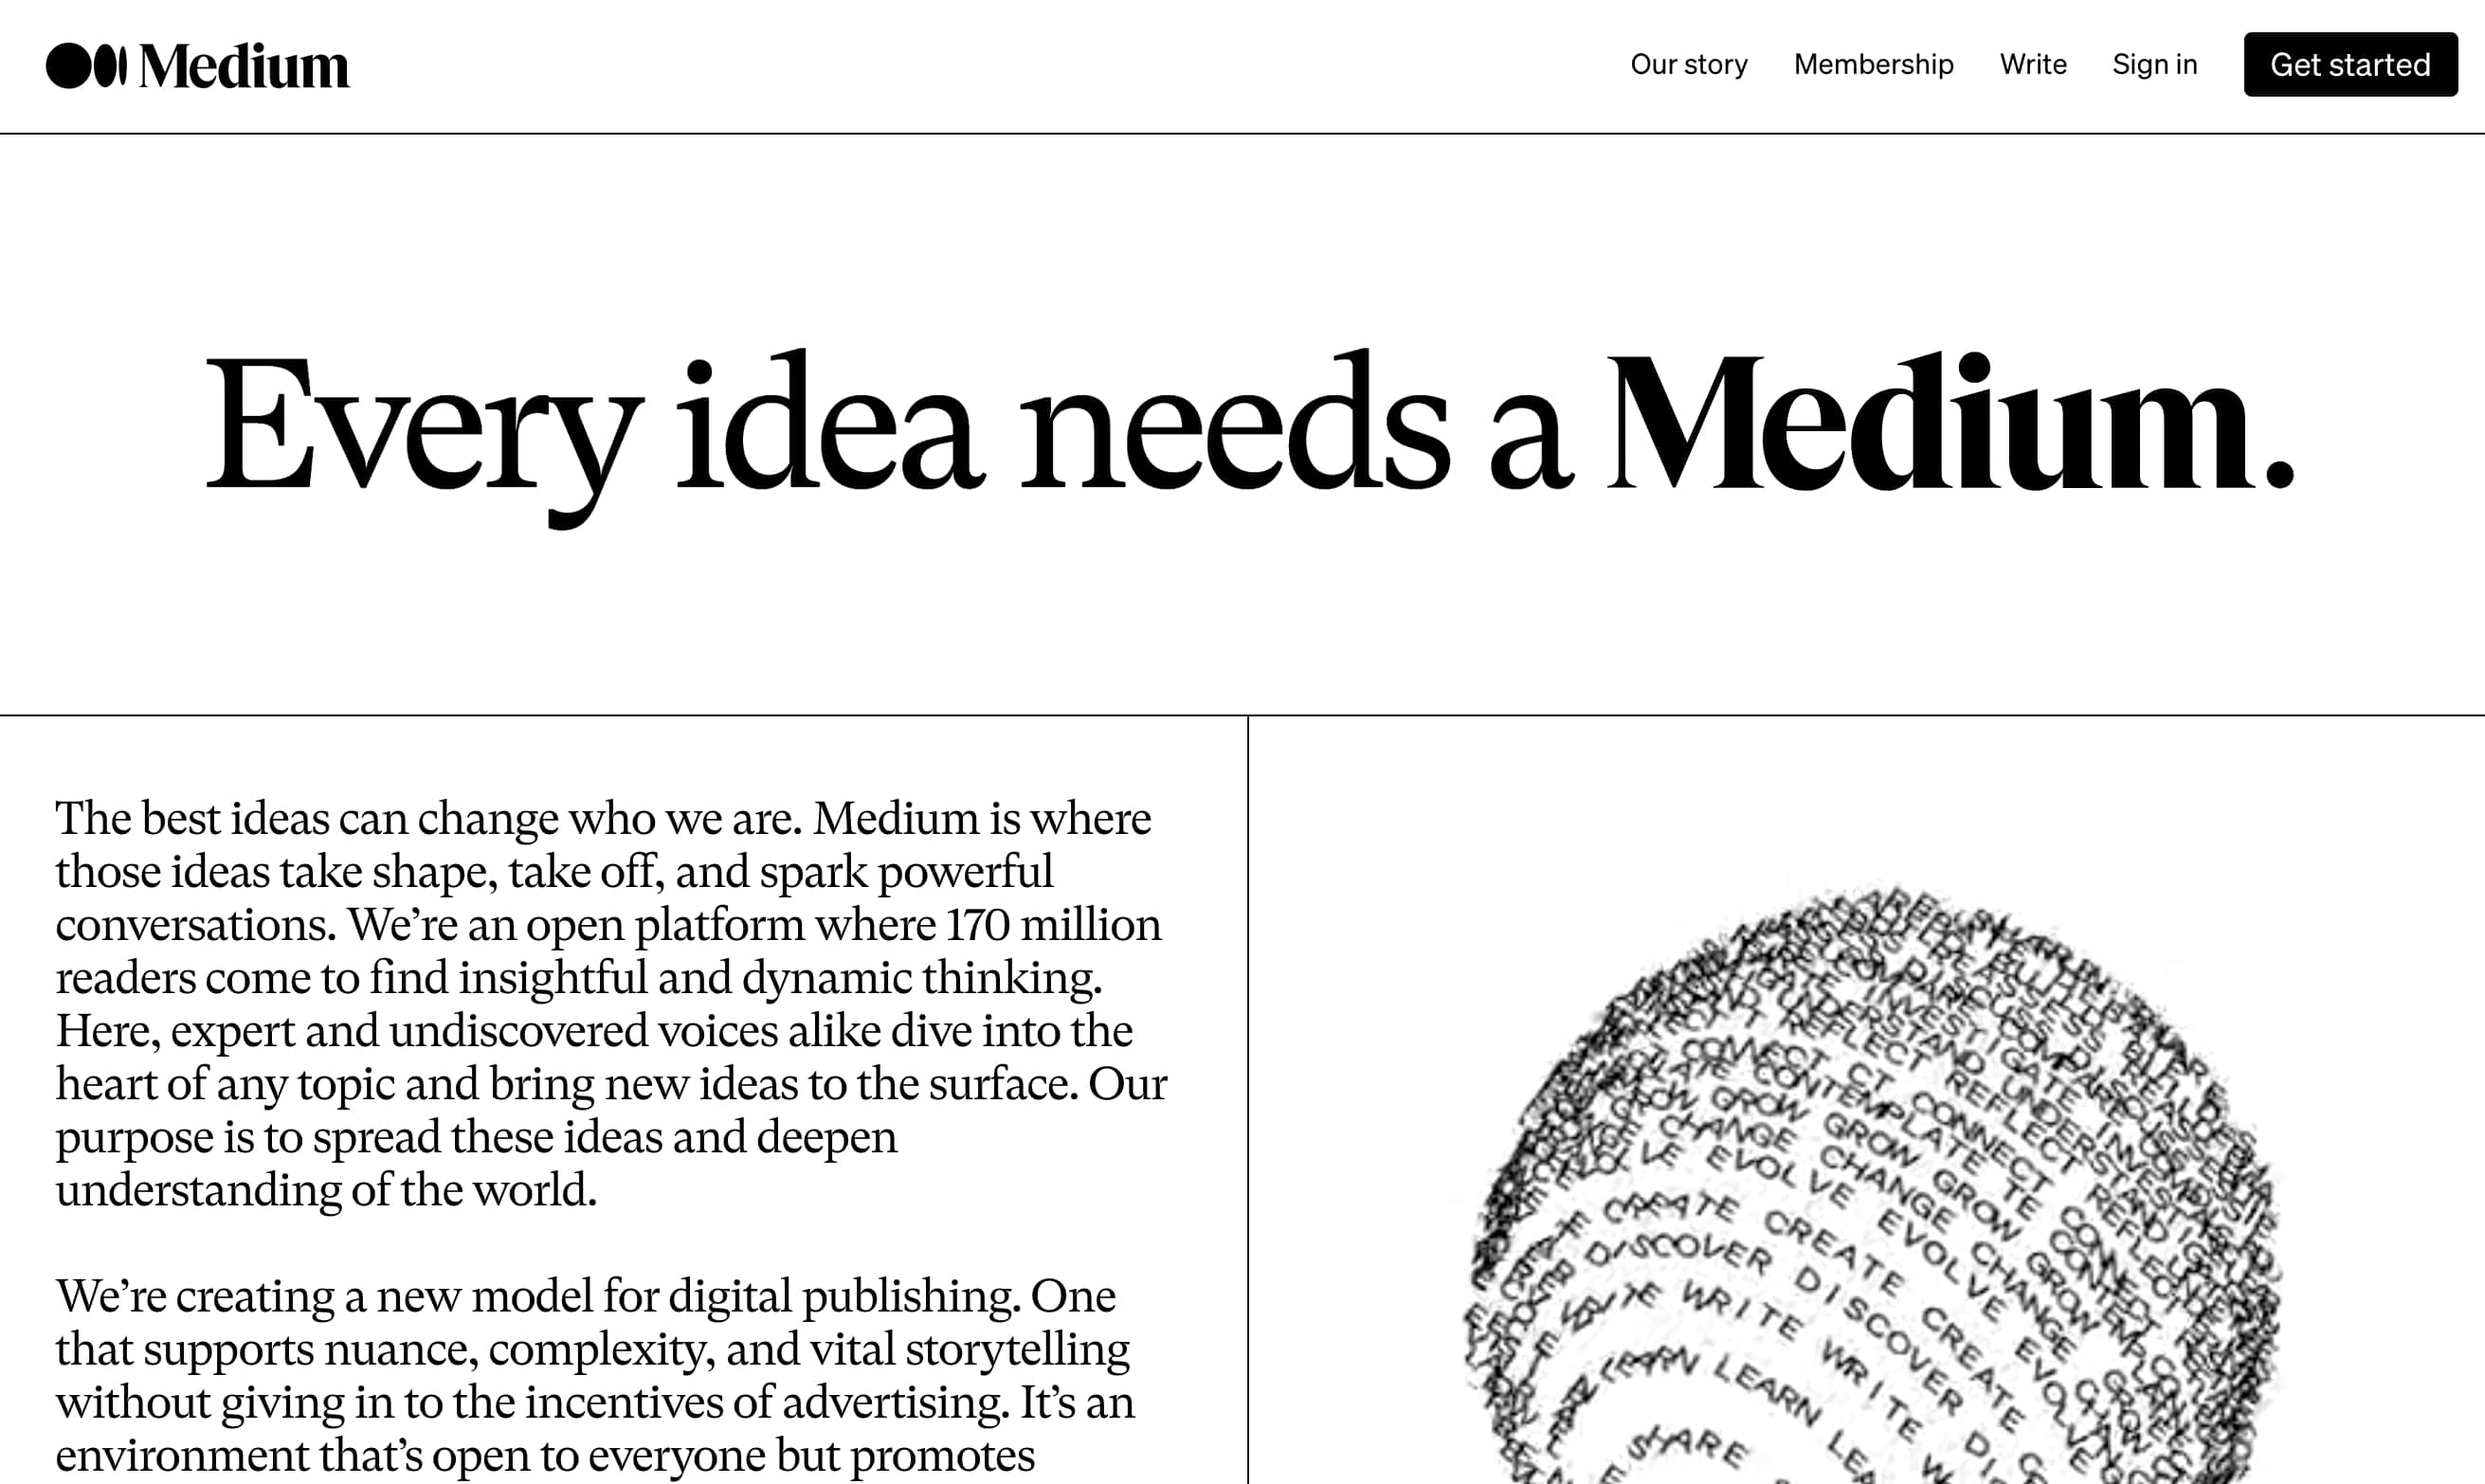 Medium's about page